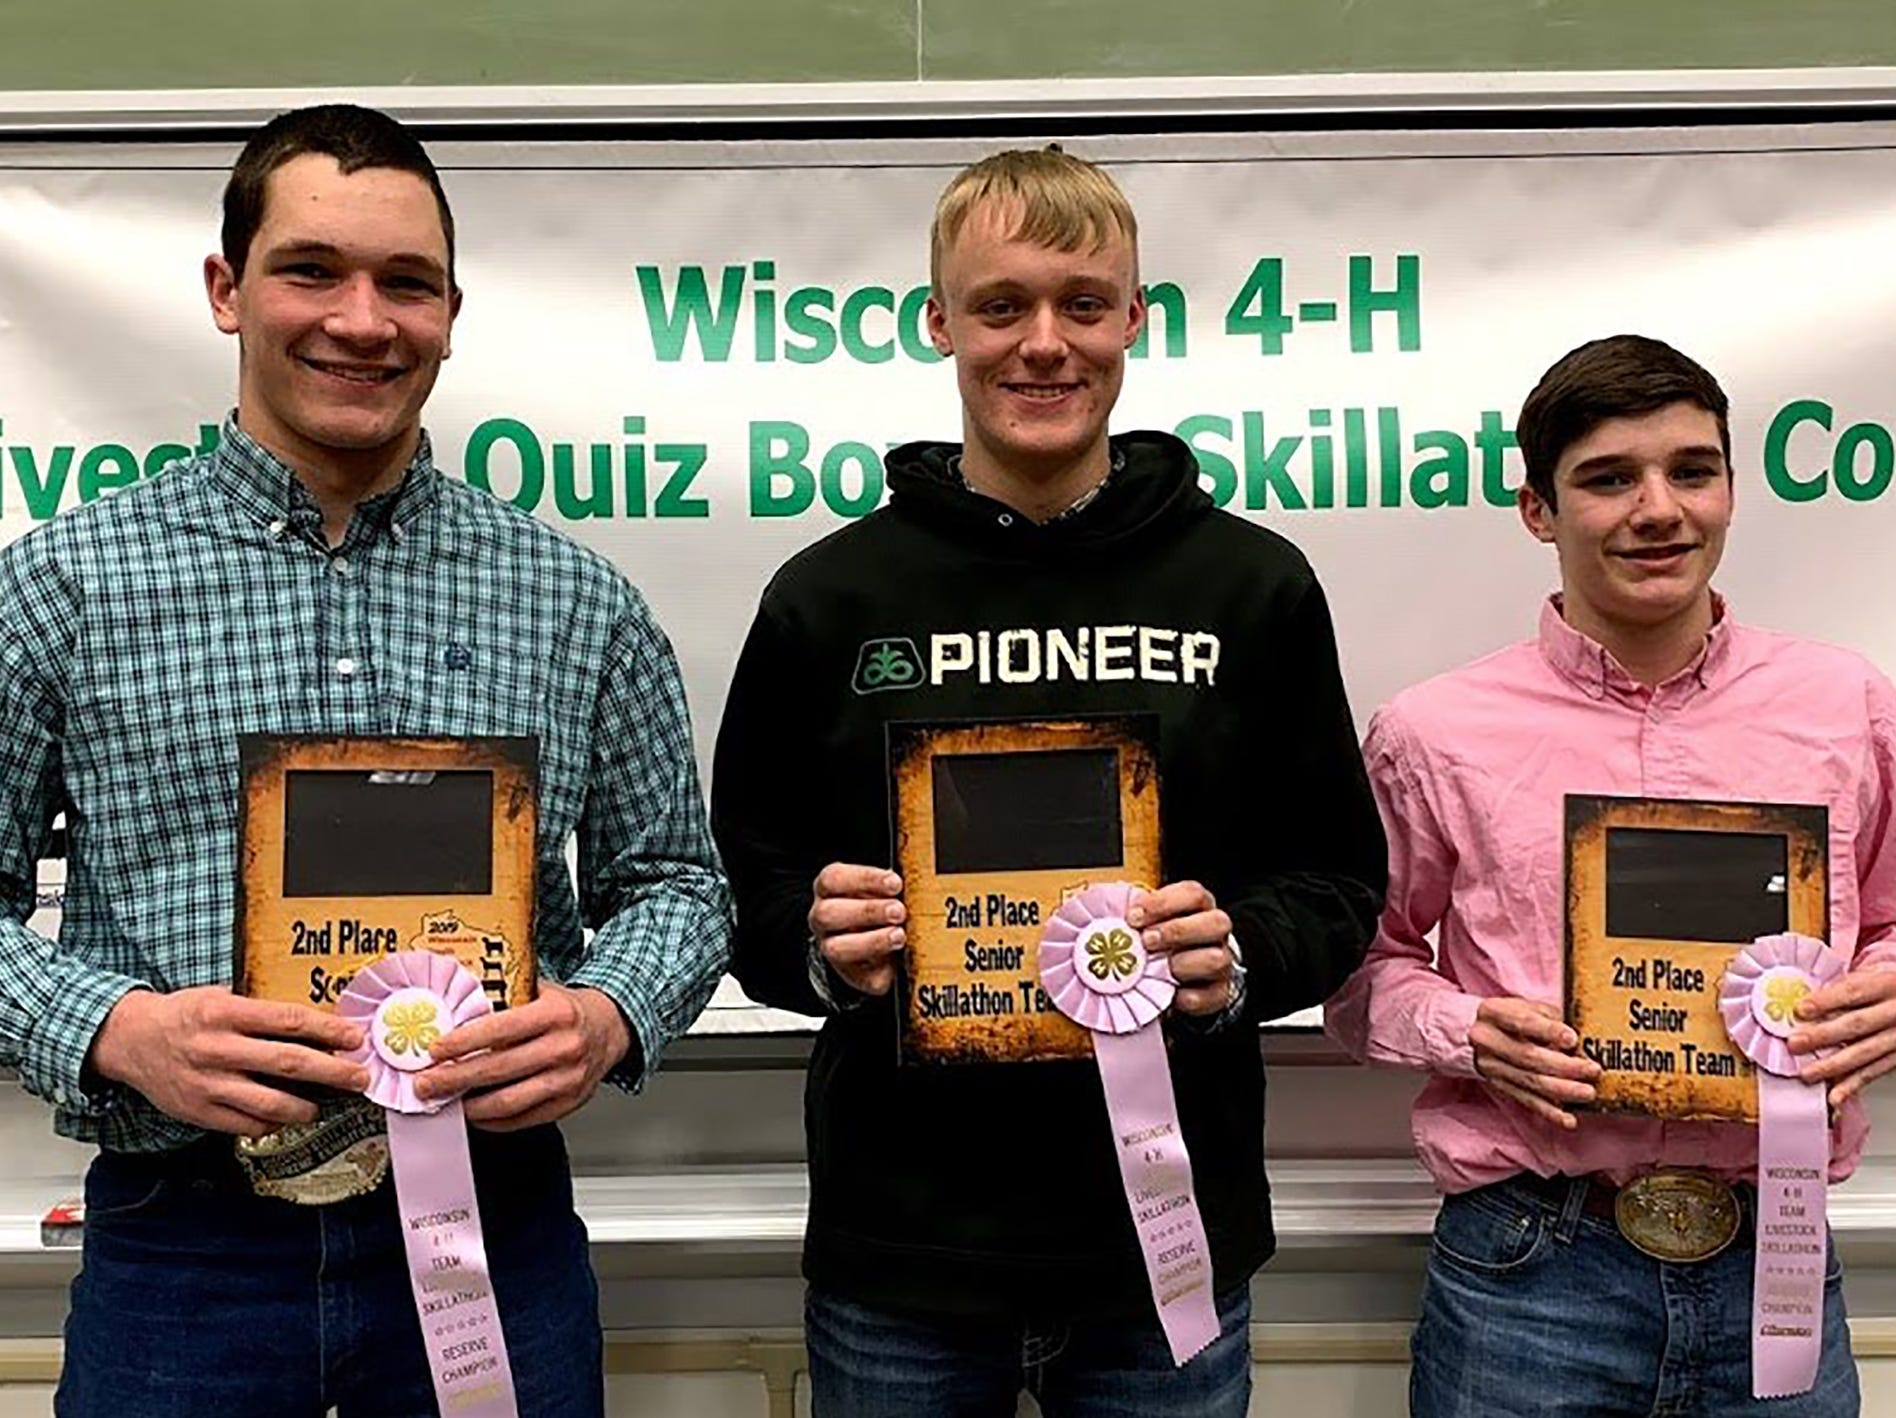 The second place Senior Skillathon team is from Columbia County with members (from left)  Justin Taylor, Zach Mickelson, Hayden Taylor.